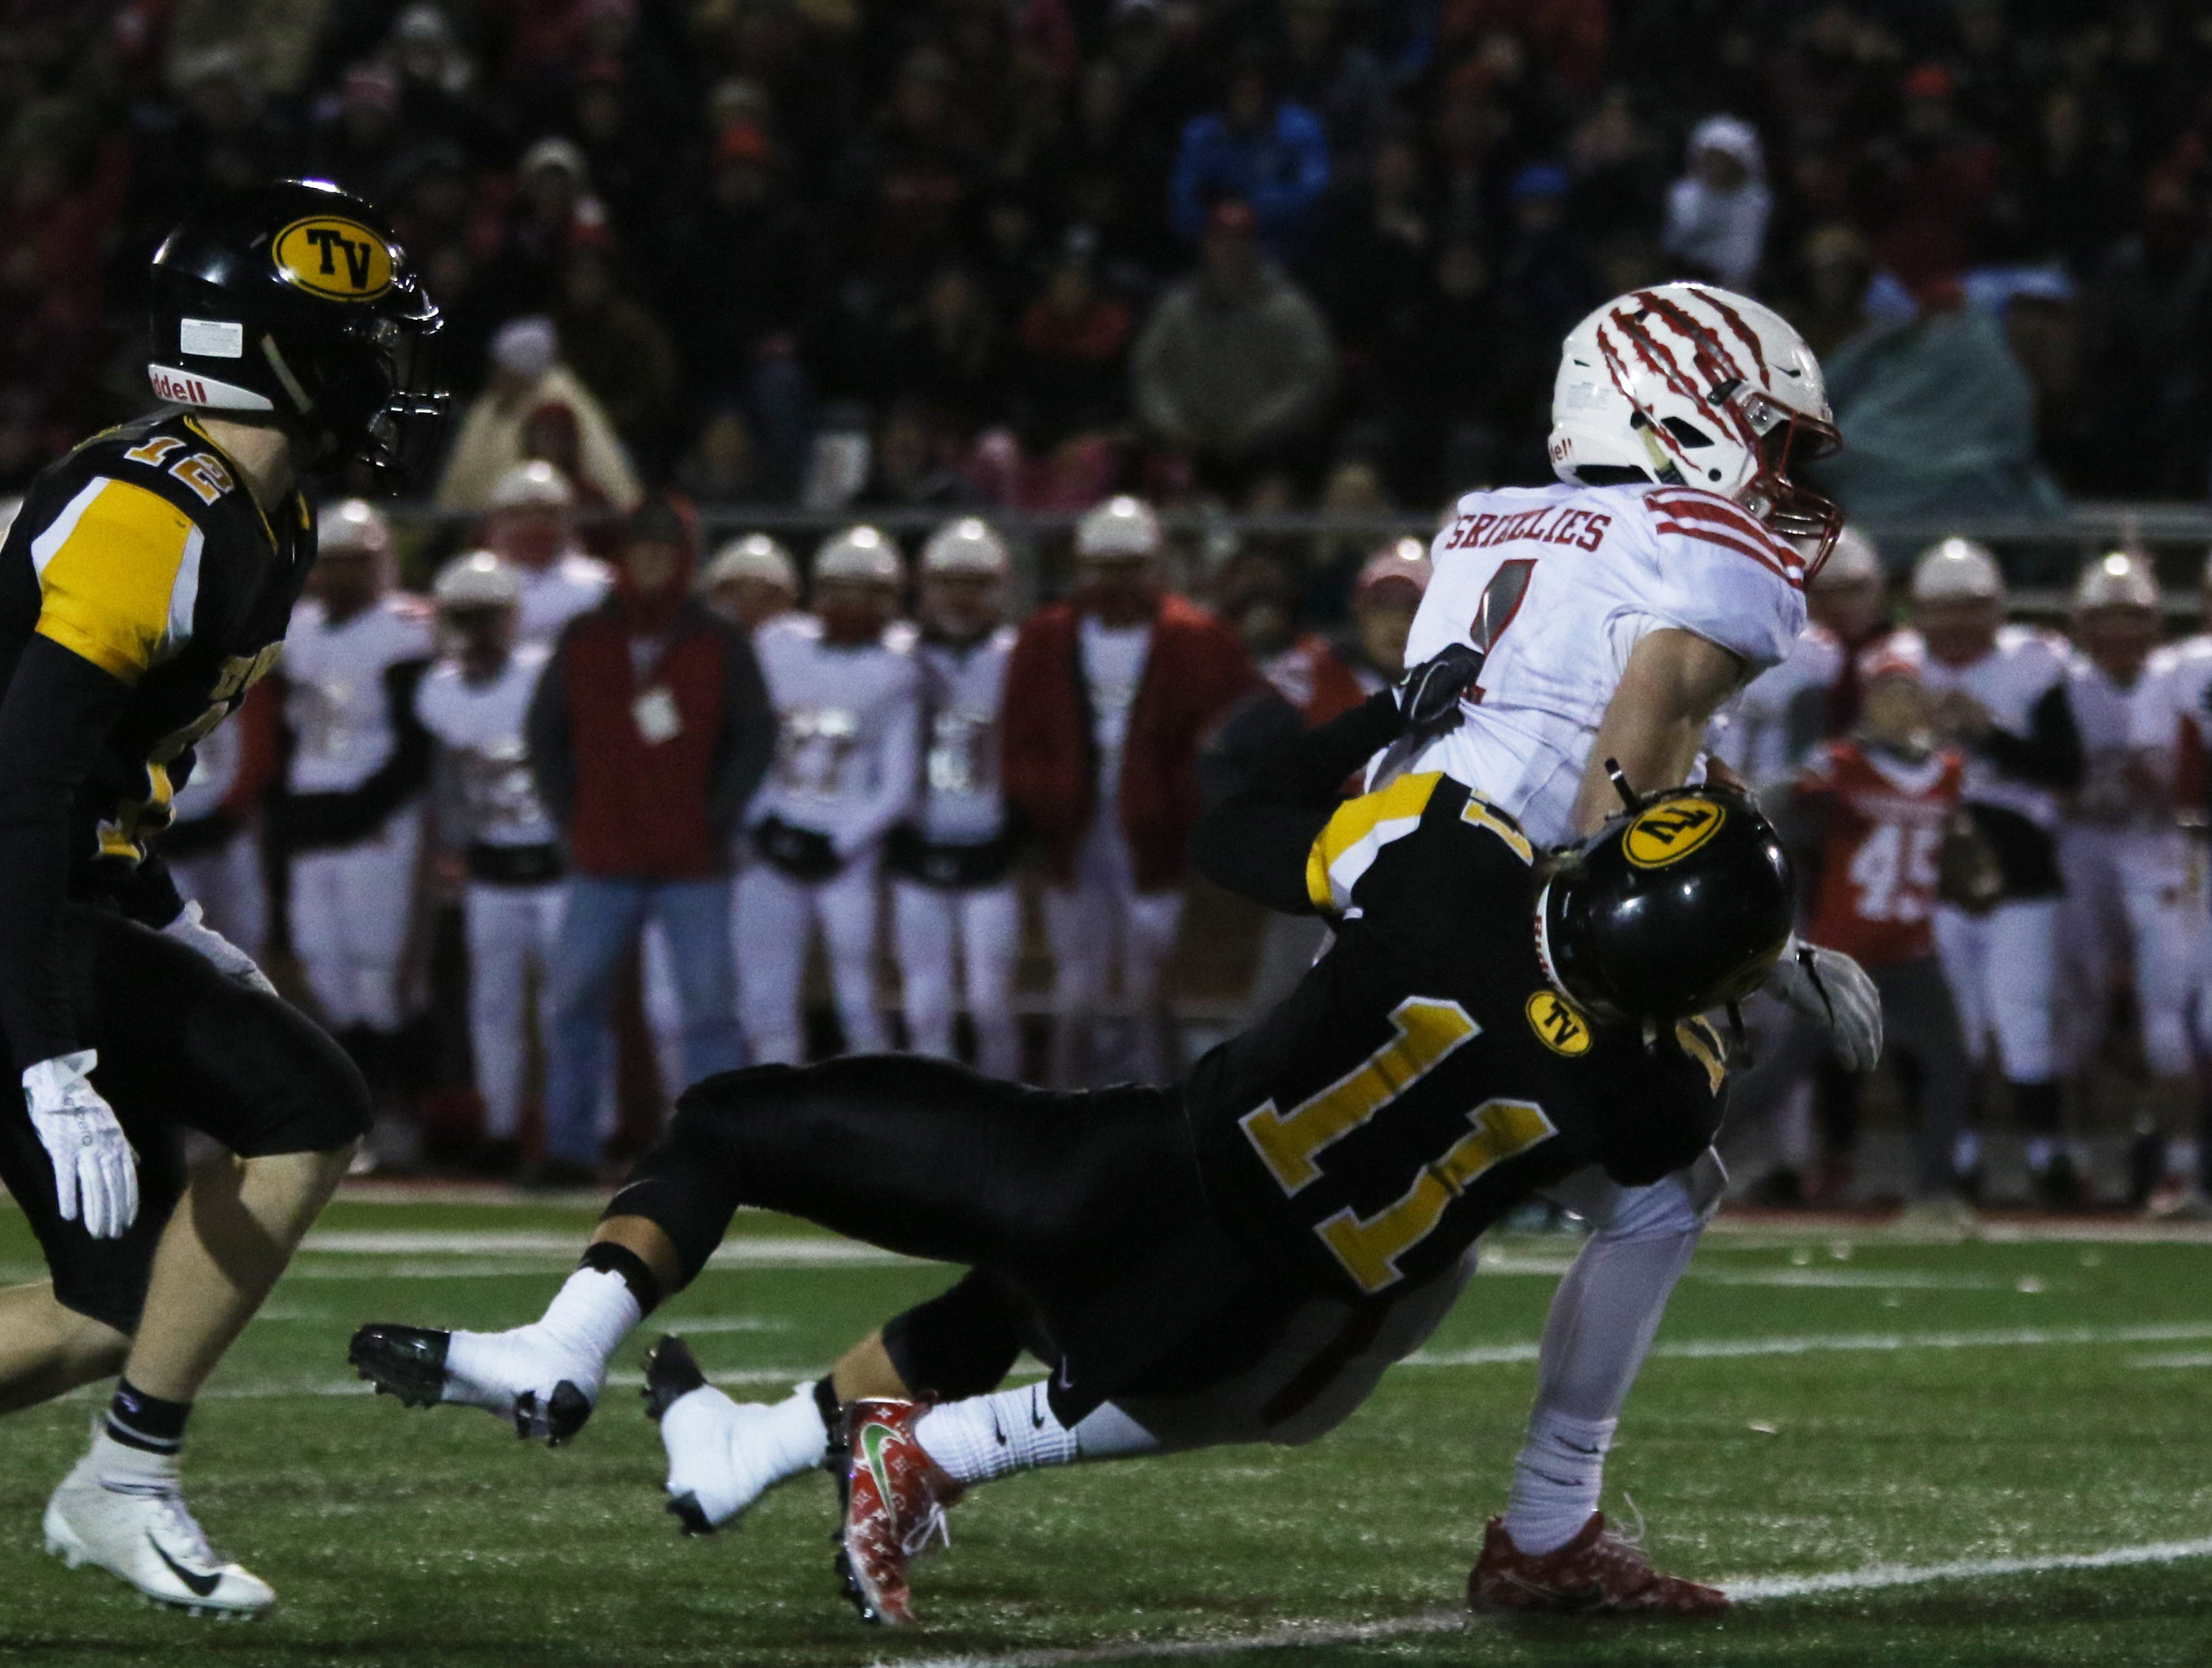 Tri-Valley's Ben Reiss pulls down a Wadsworth ball carrier.